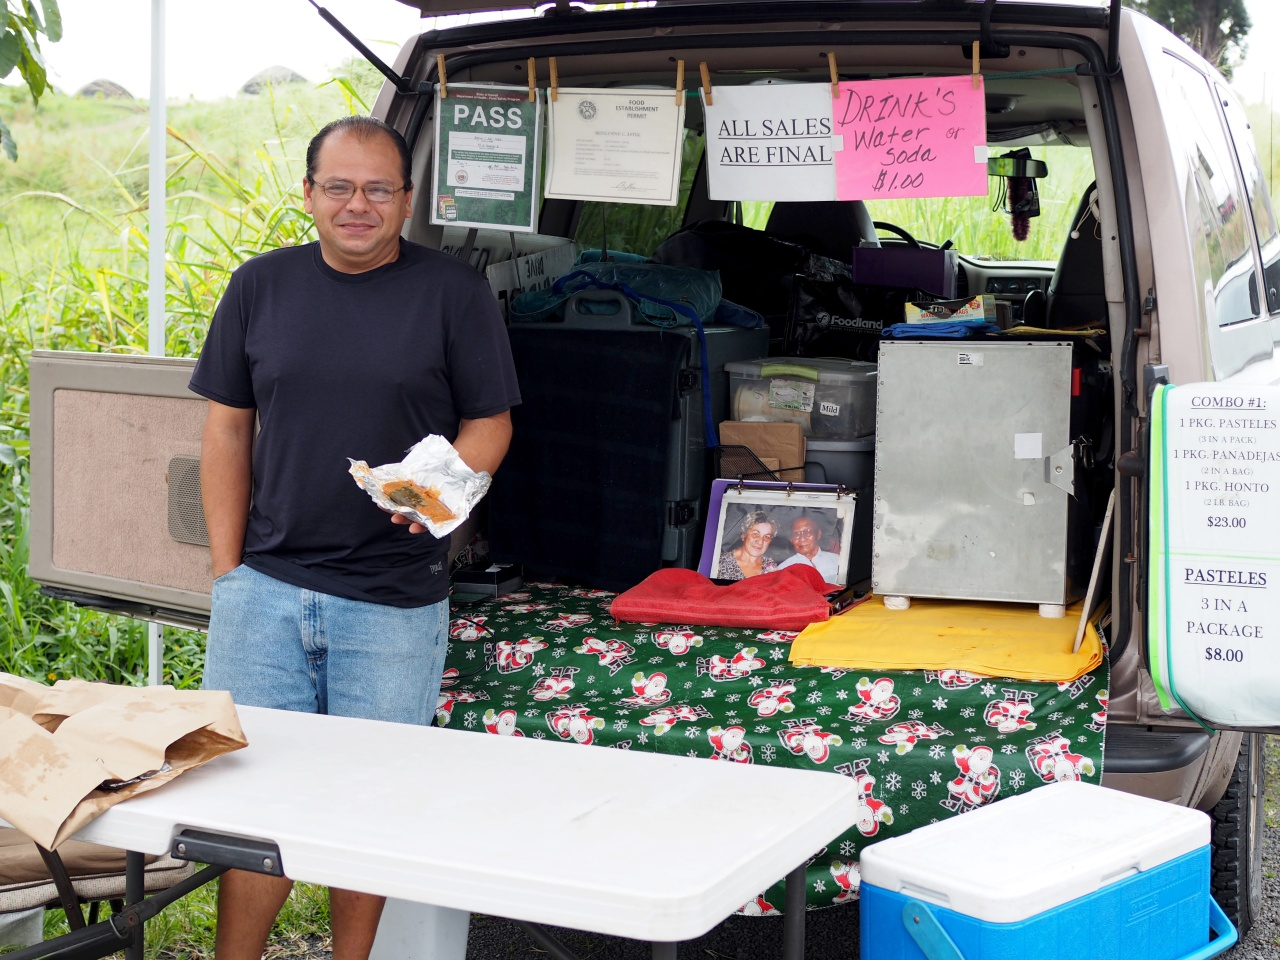 Benlynne Astel's son at their roadside Puerto Rican food stall.